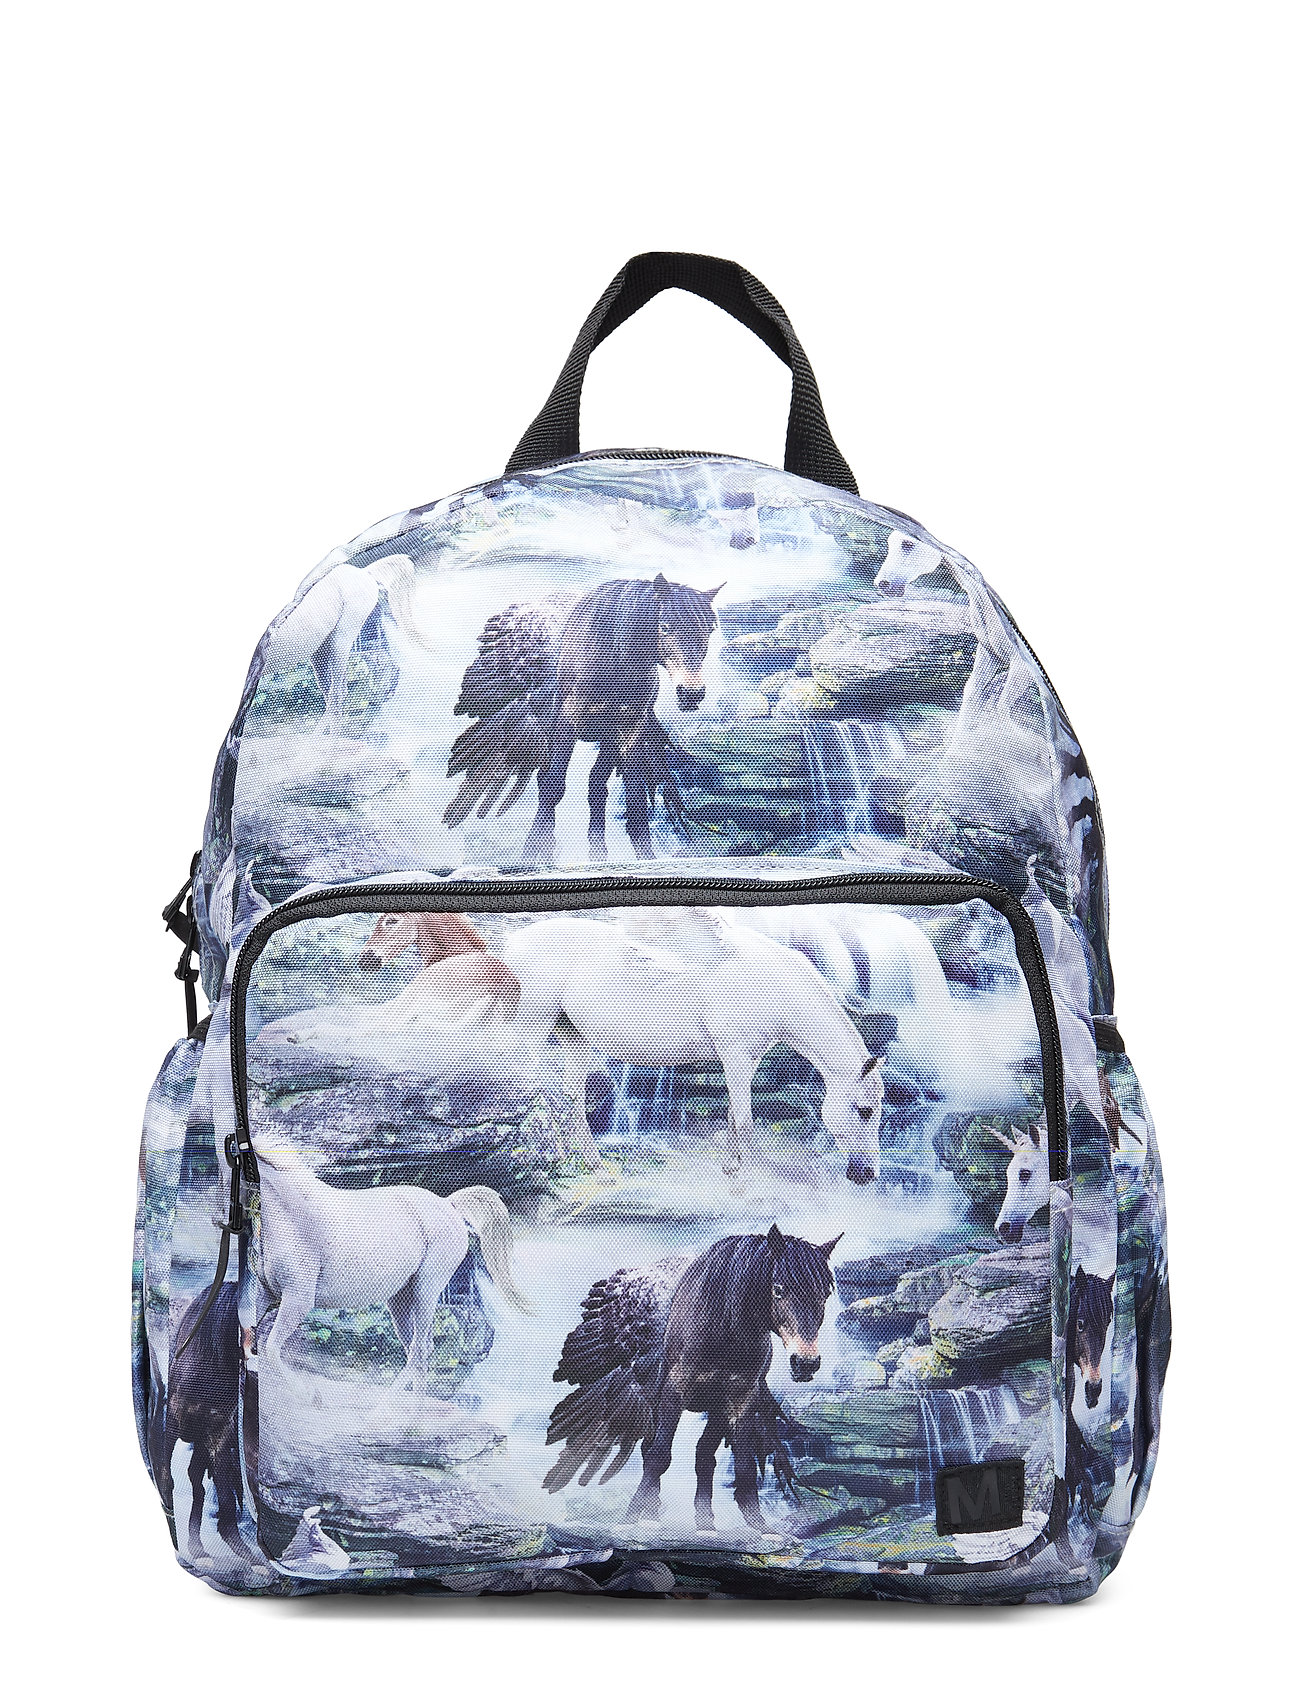 Molo Big Backpack - MYTHICAL CREATURES